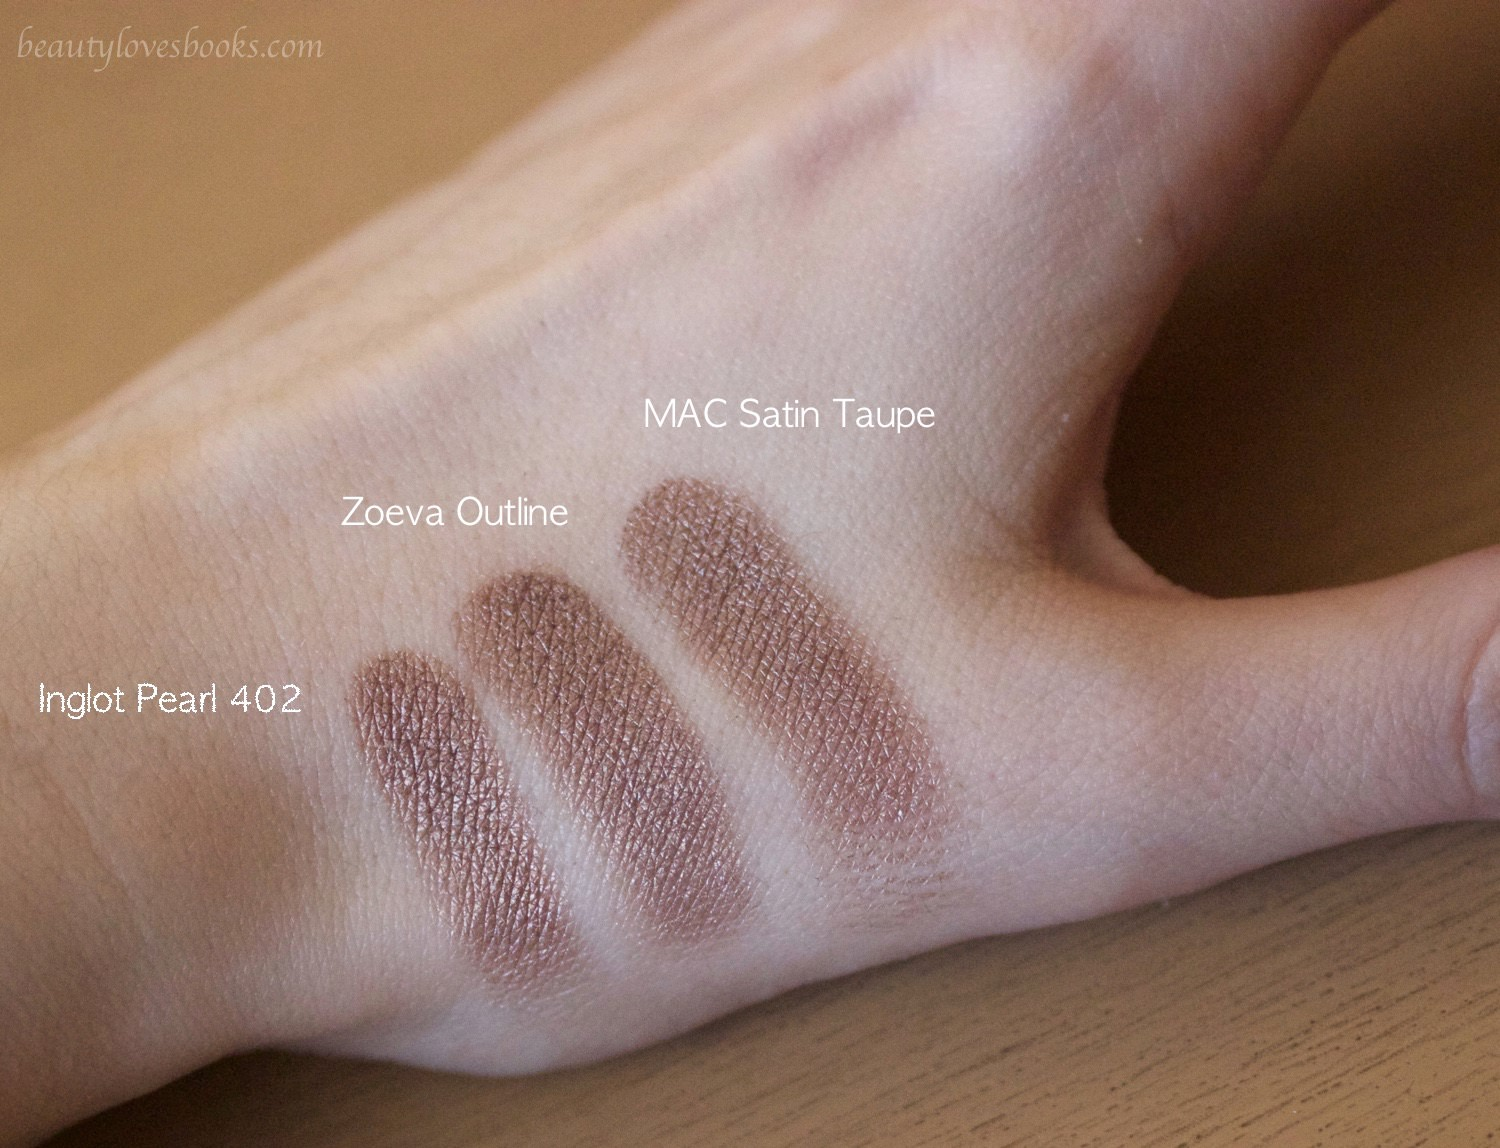 Zoeva En taupe palette, Inglot Pearl 402, MAC Satin taupe dupes